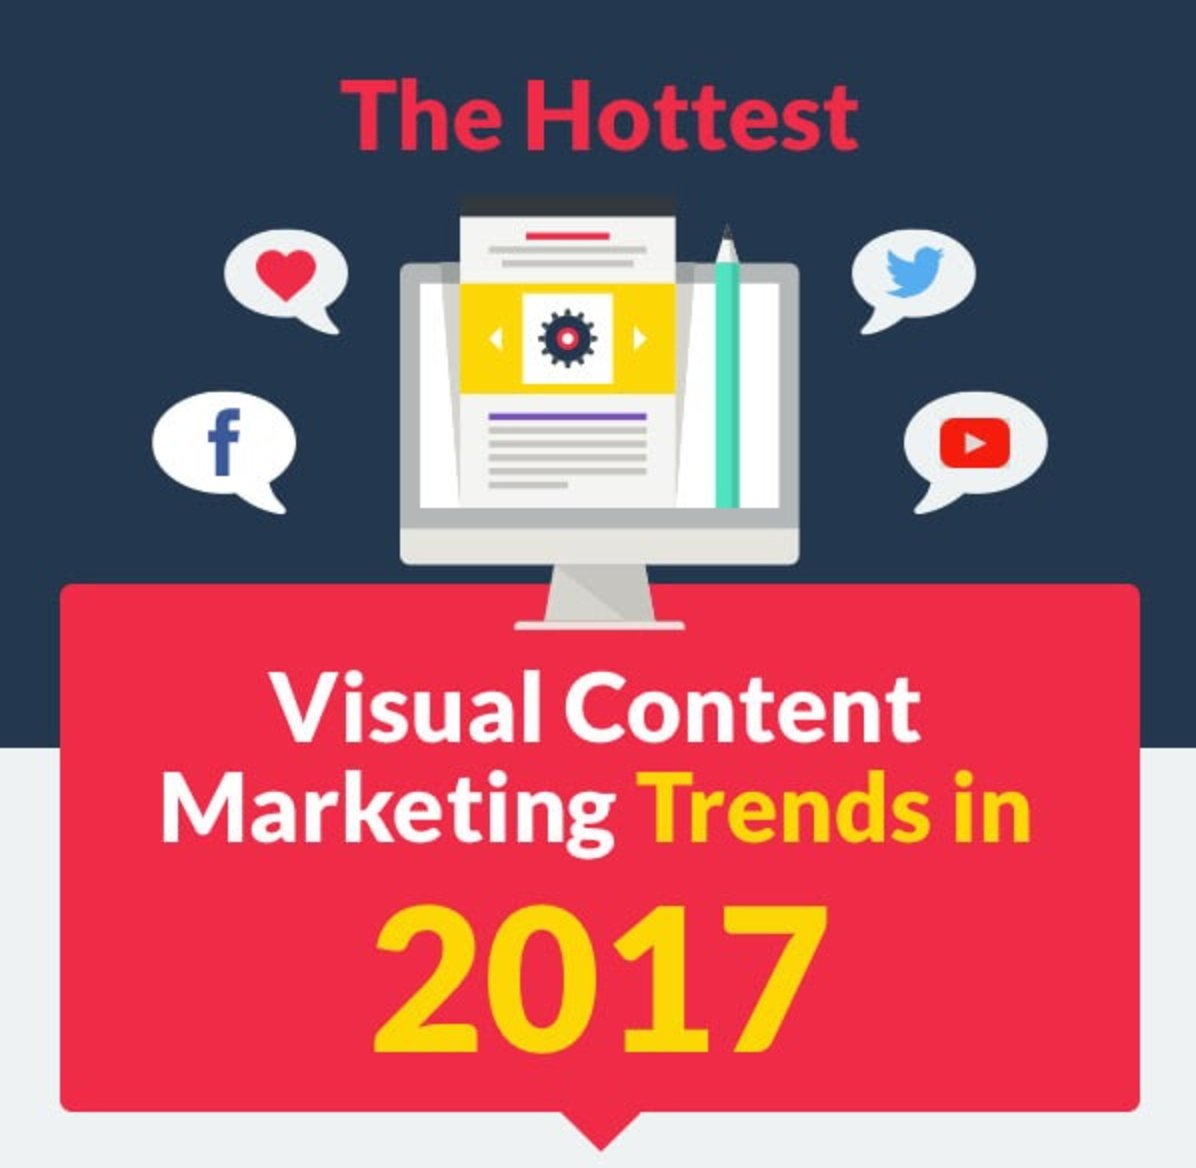 5 million #GIFs are exchanged on Facebook Messenger daily. Are you surprised?  http:// ow.ly/ogNP30f71a3  &nbsp;   #visualcontent #strategy<br>http://pic.twitter.com/JoOrBX0jdh